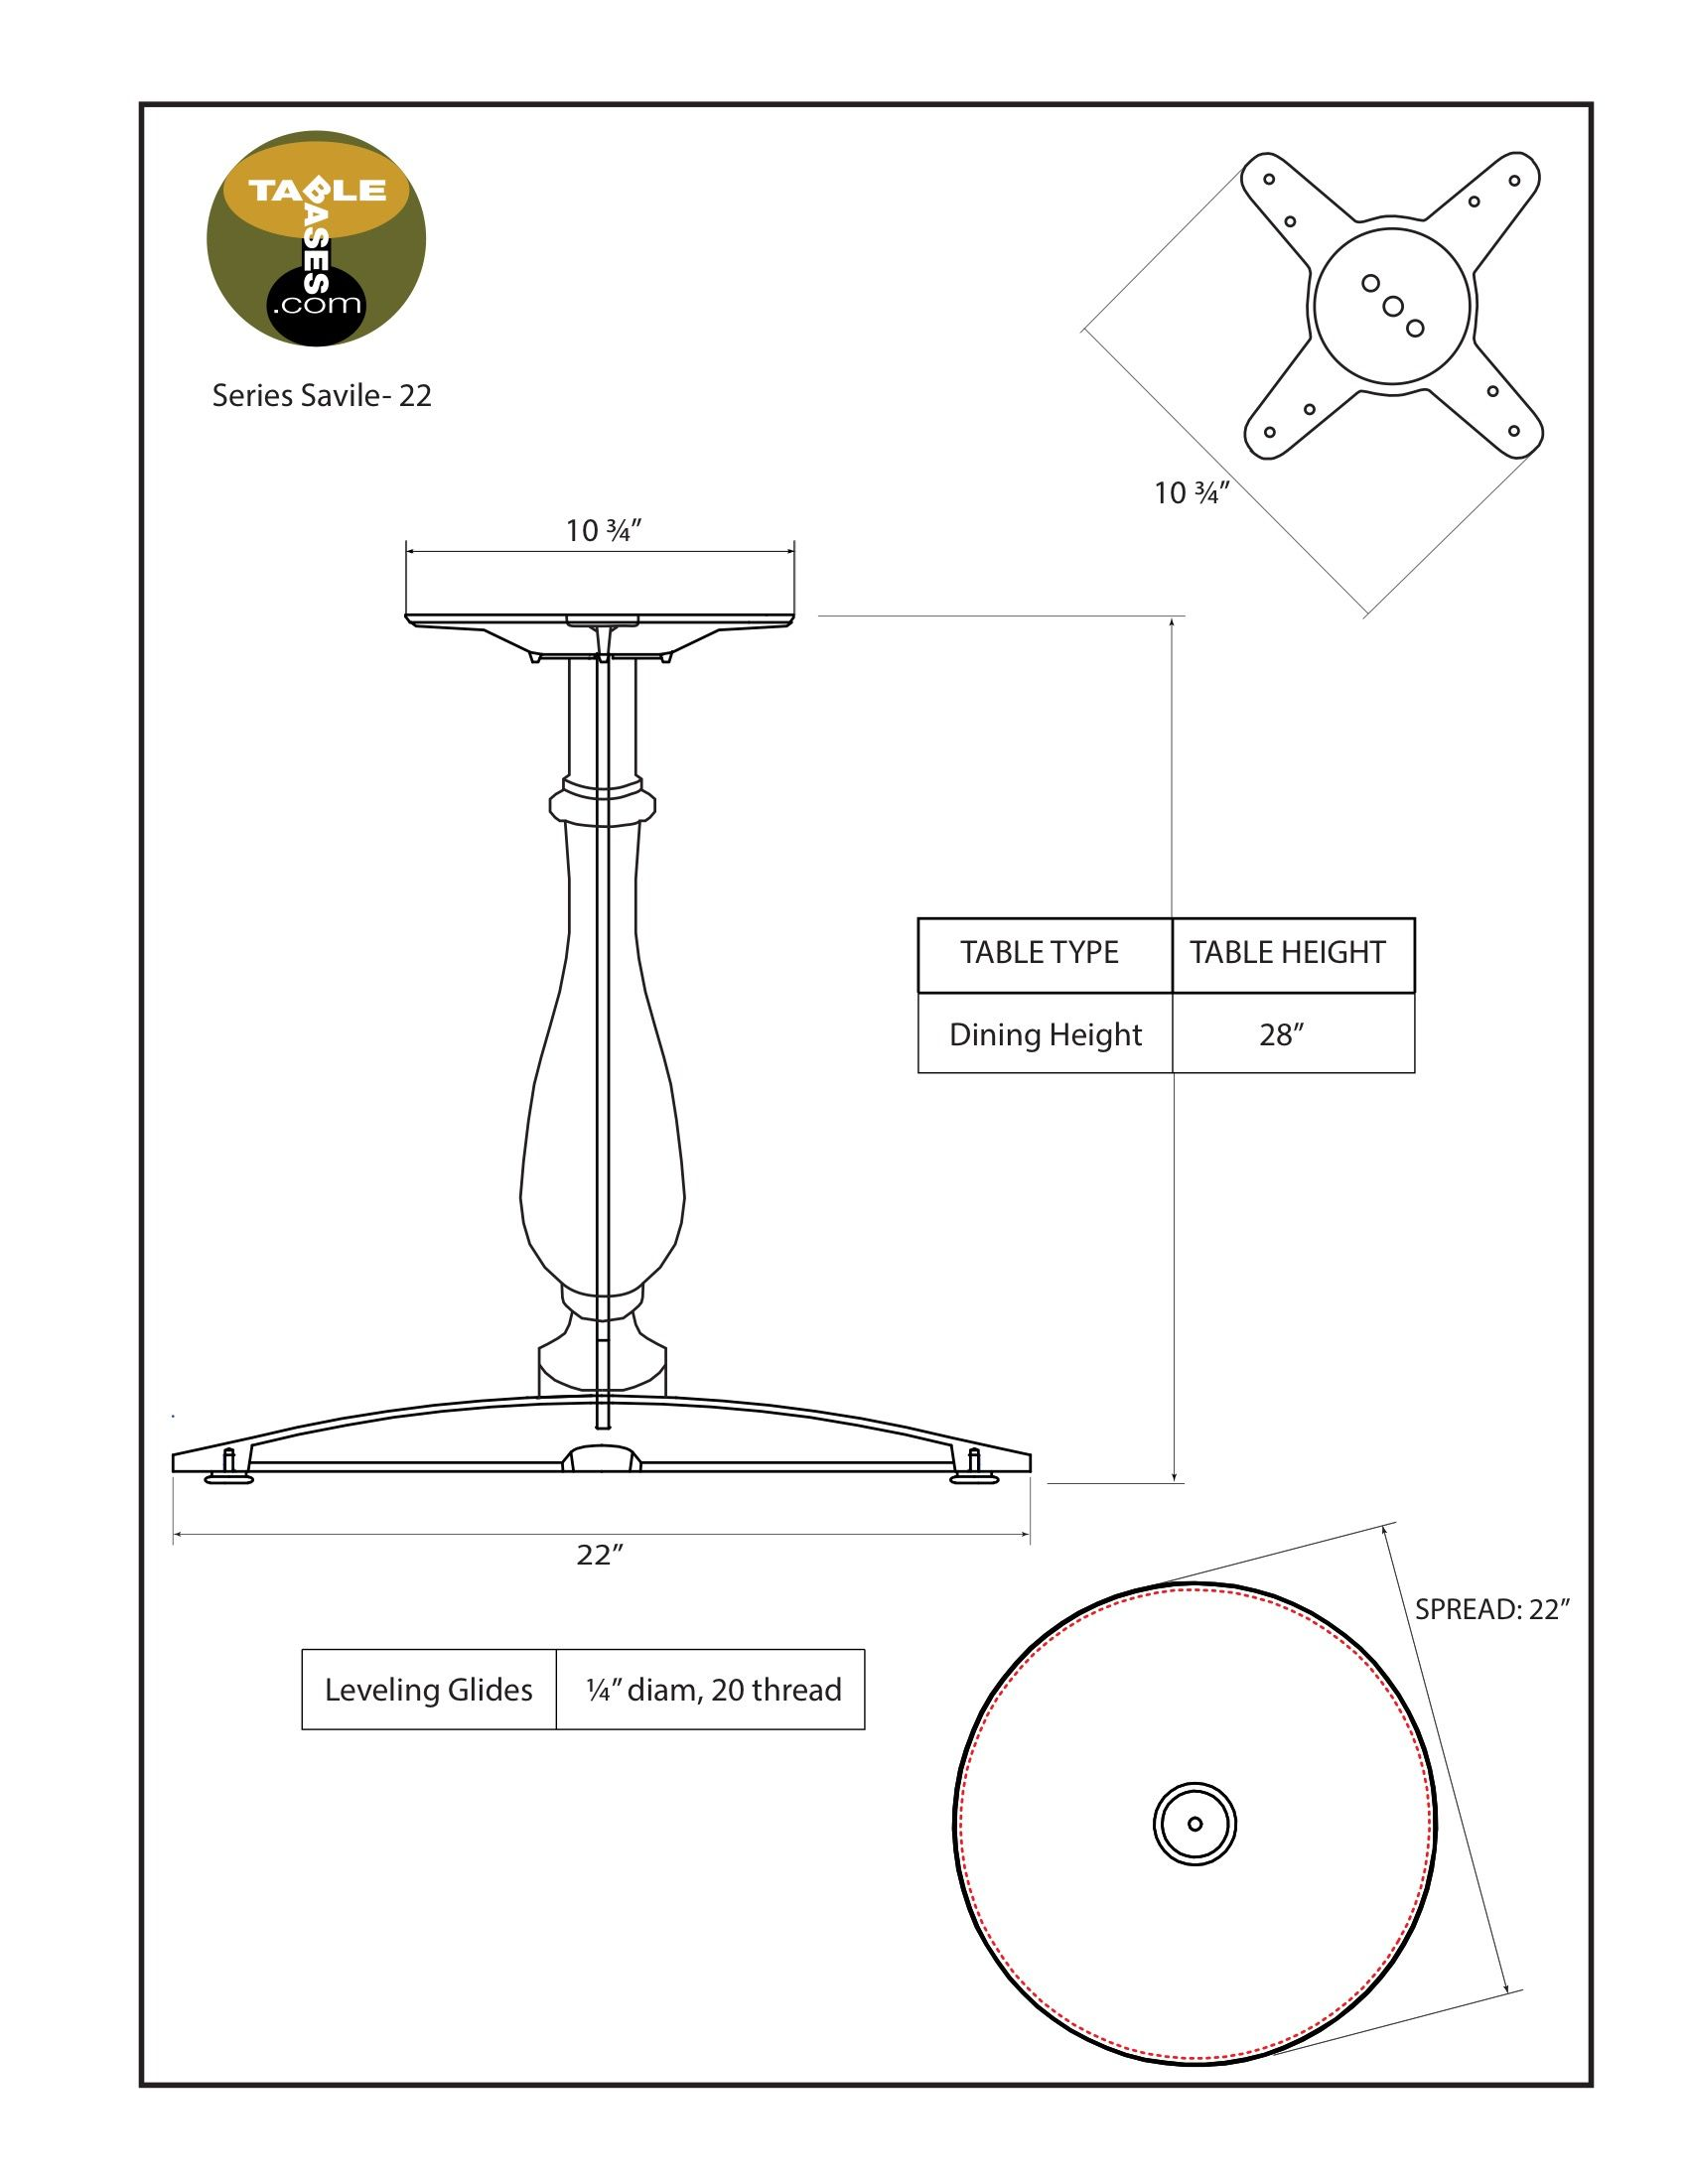 Savile-22 Specifications